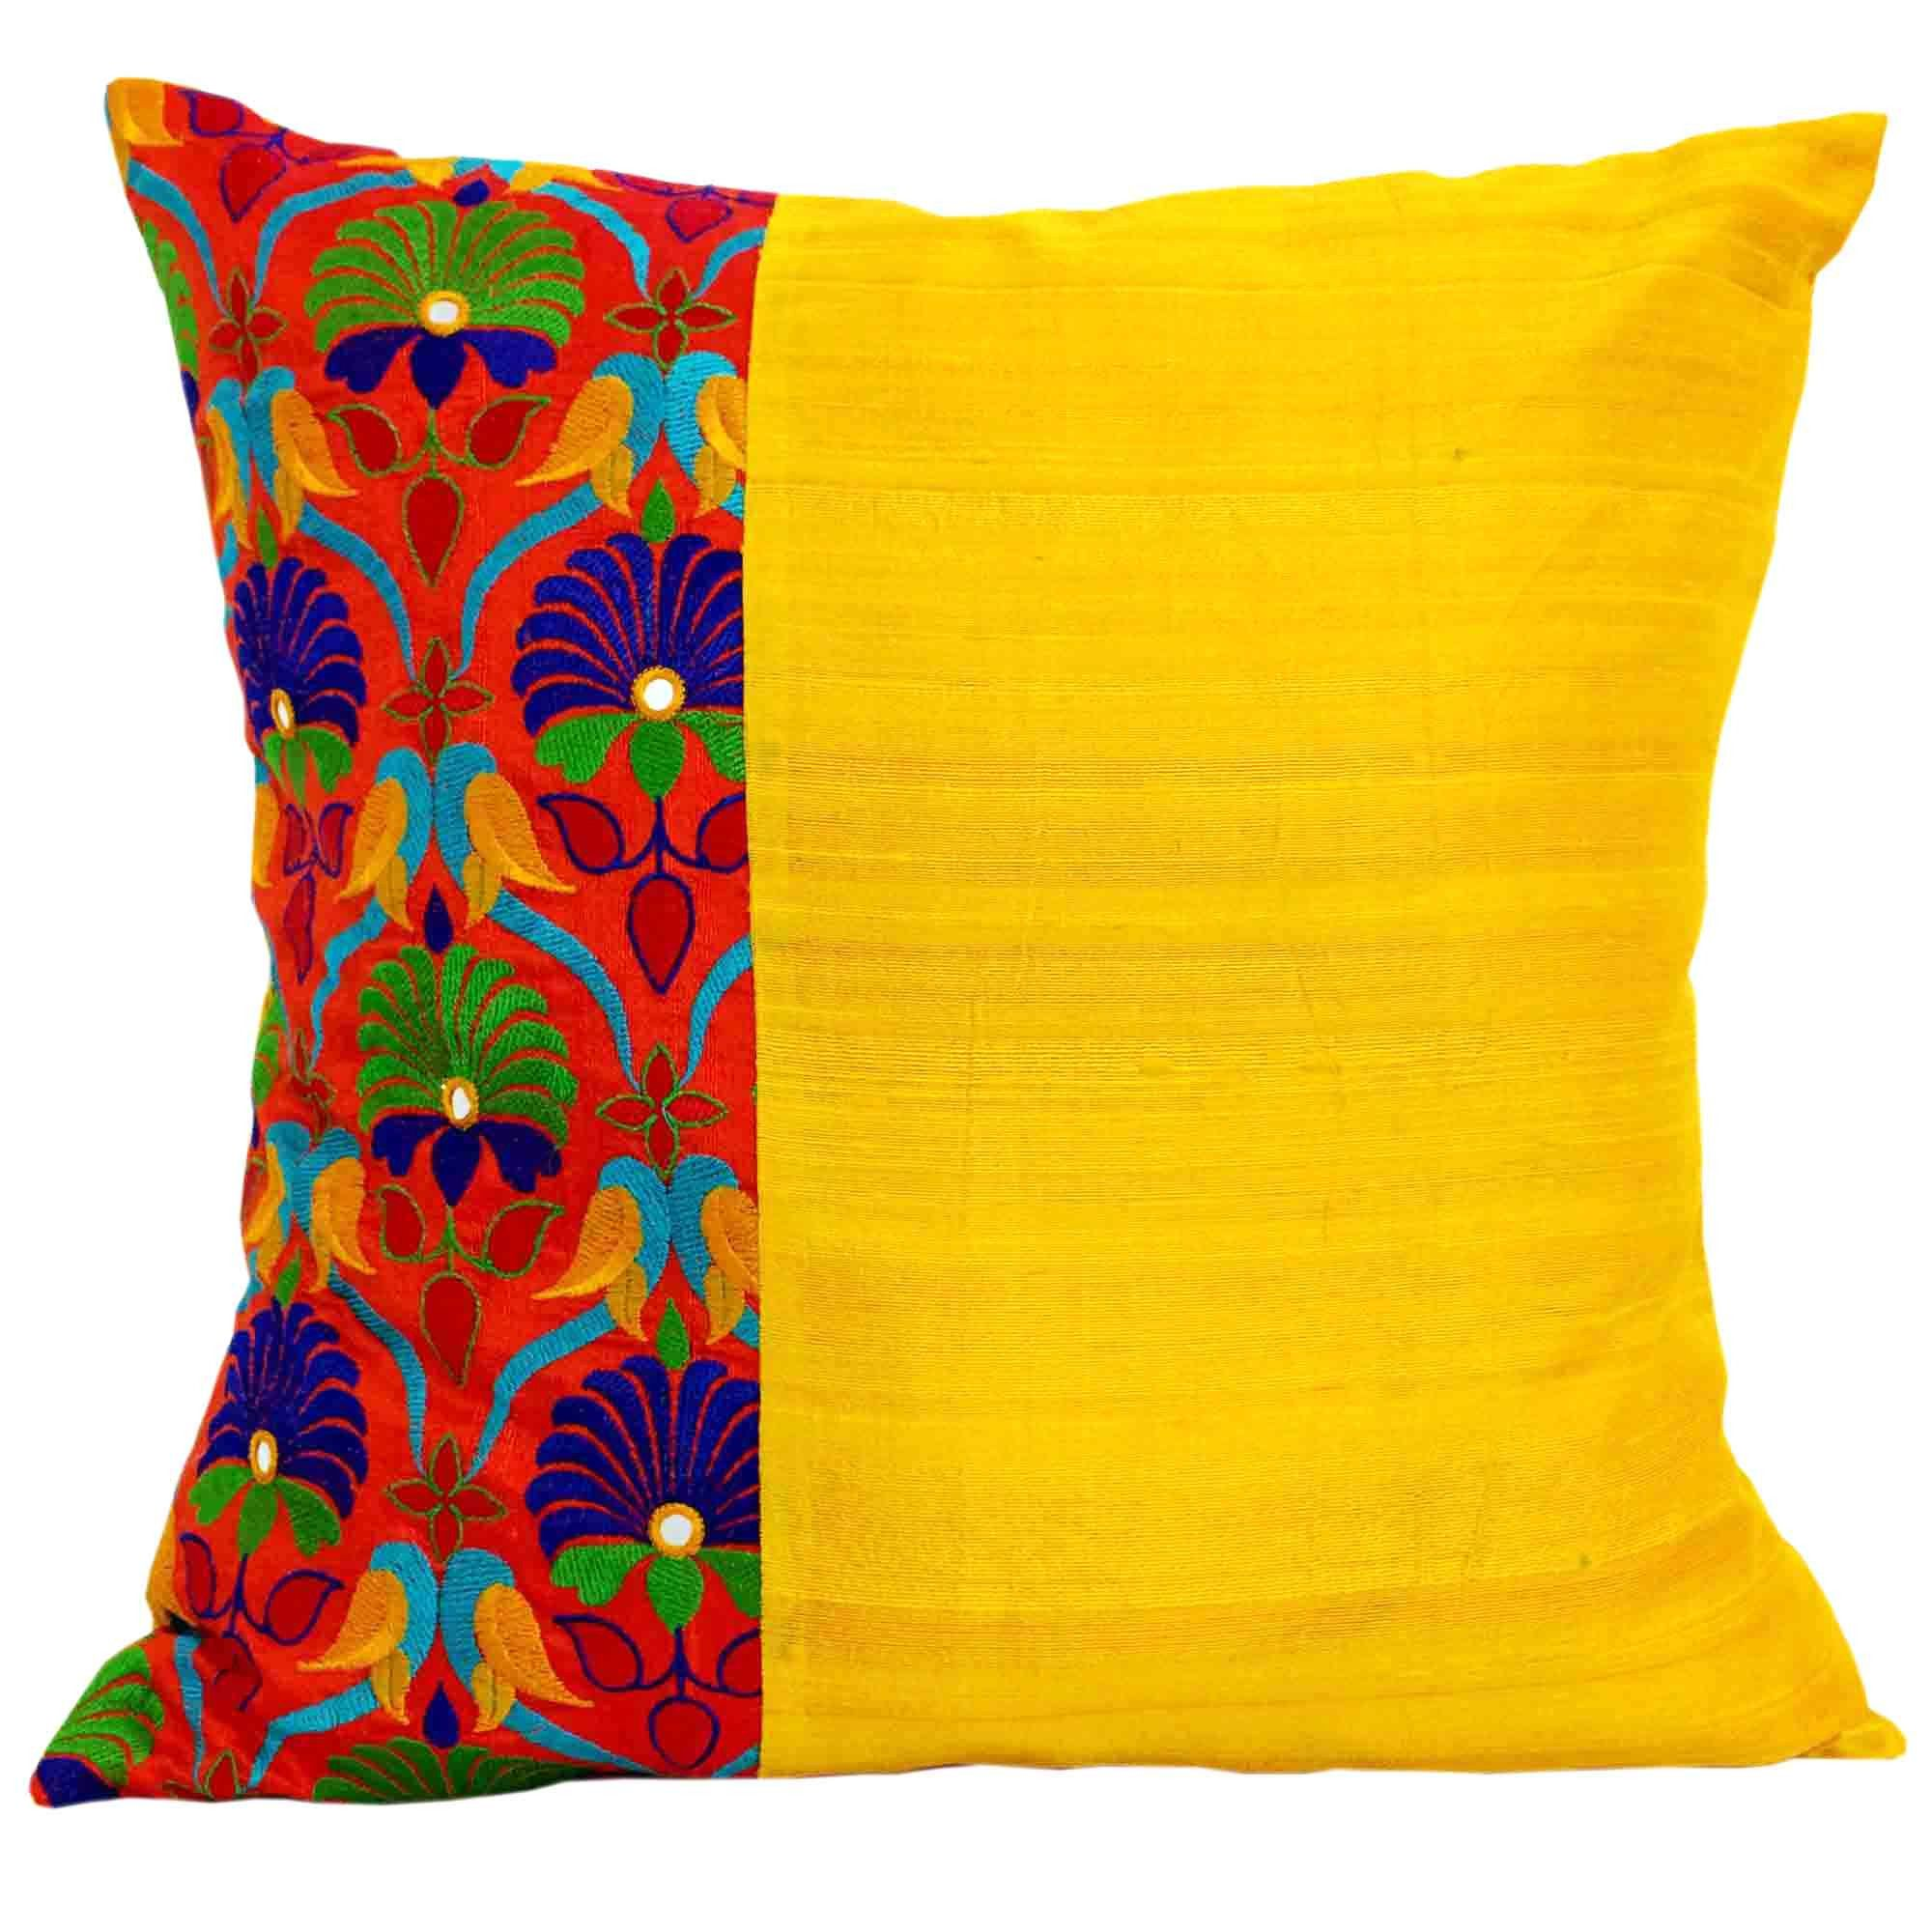 Yellow Silk Decorative Pillows : Kutch Embroidery Silk Pillow Cover in Orange and Yellow Embroidery, Pillows and Pillow talk